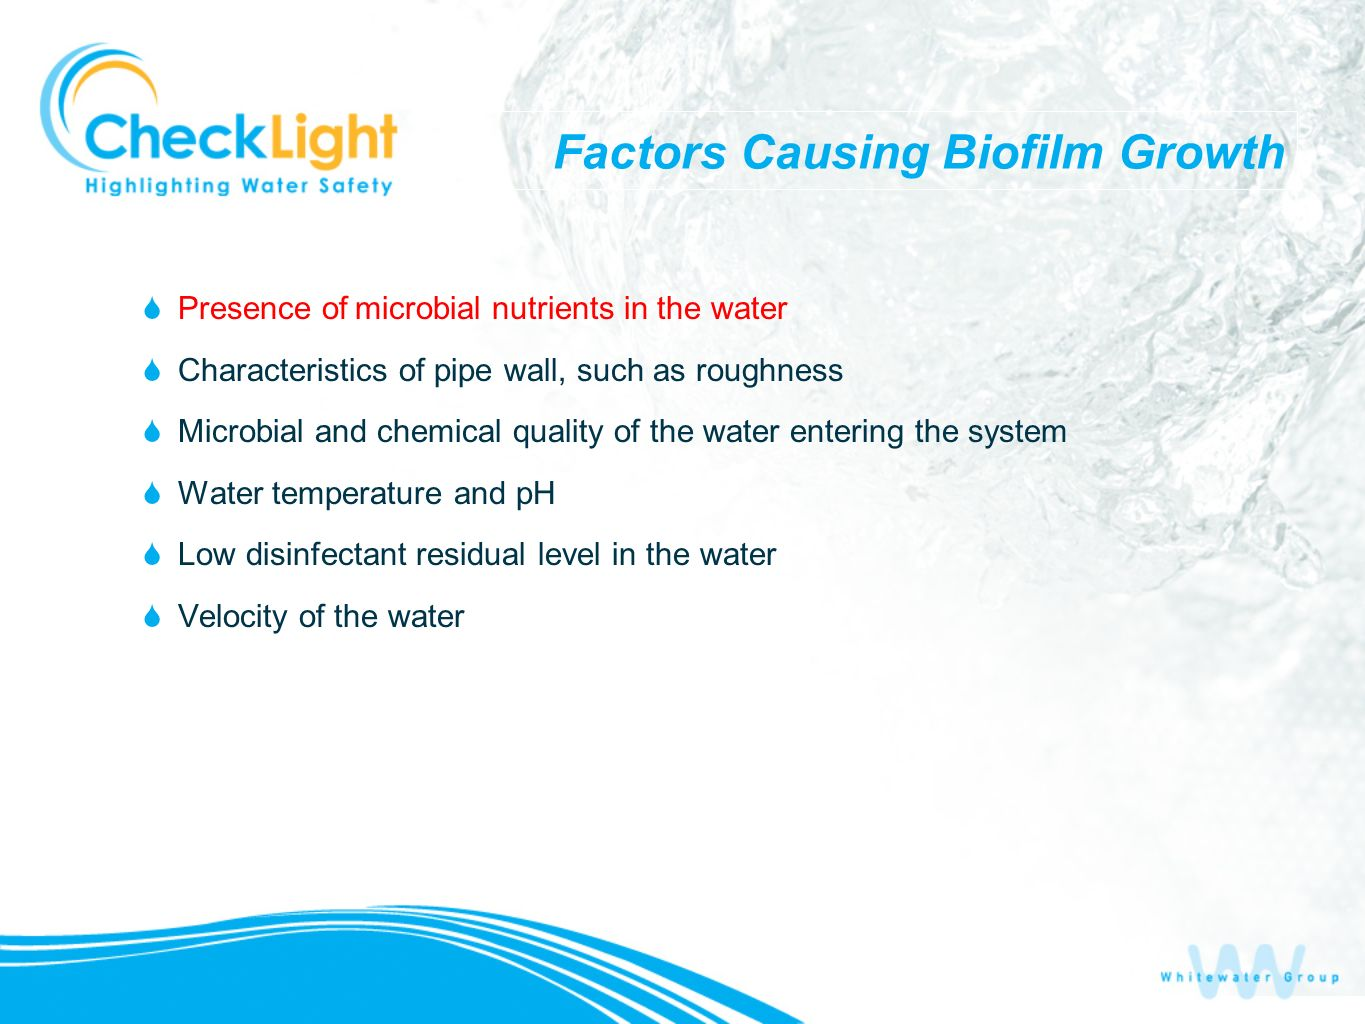 Factors Causing Biofilm Growth